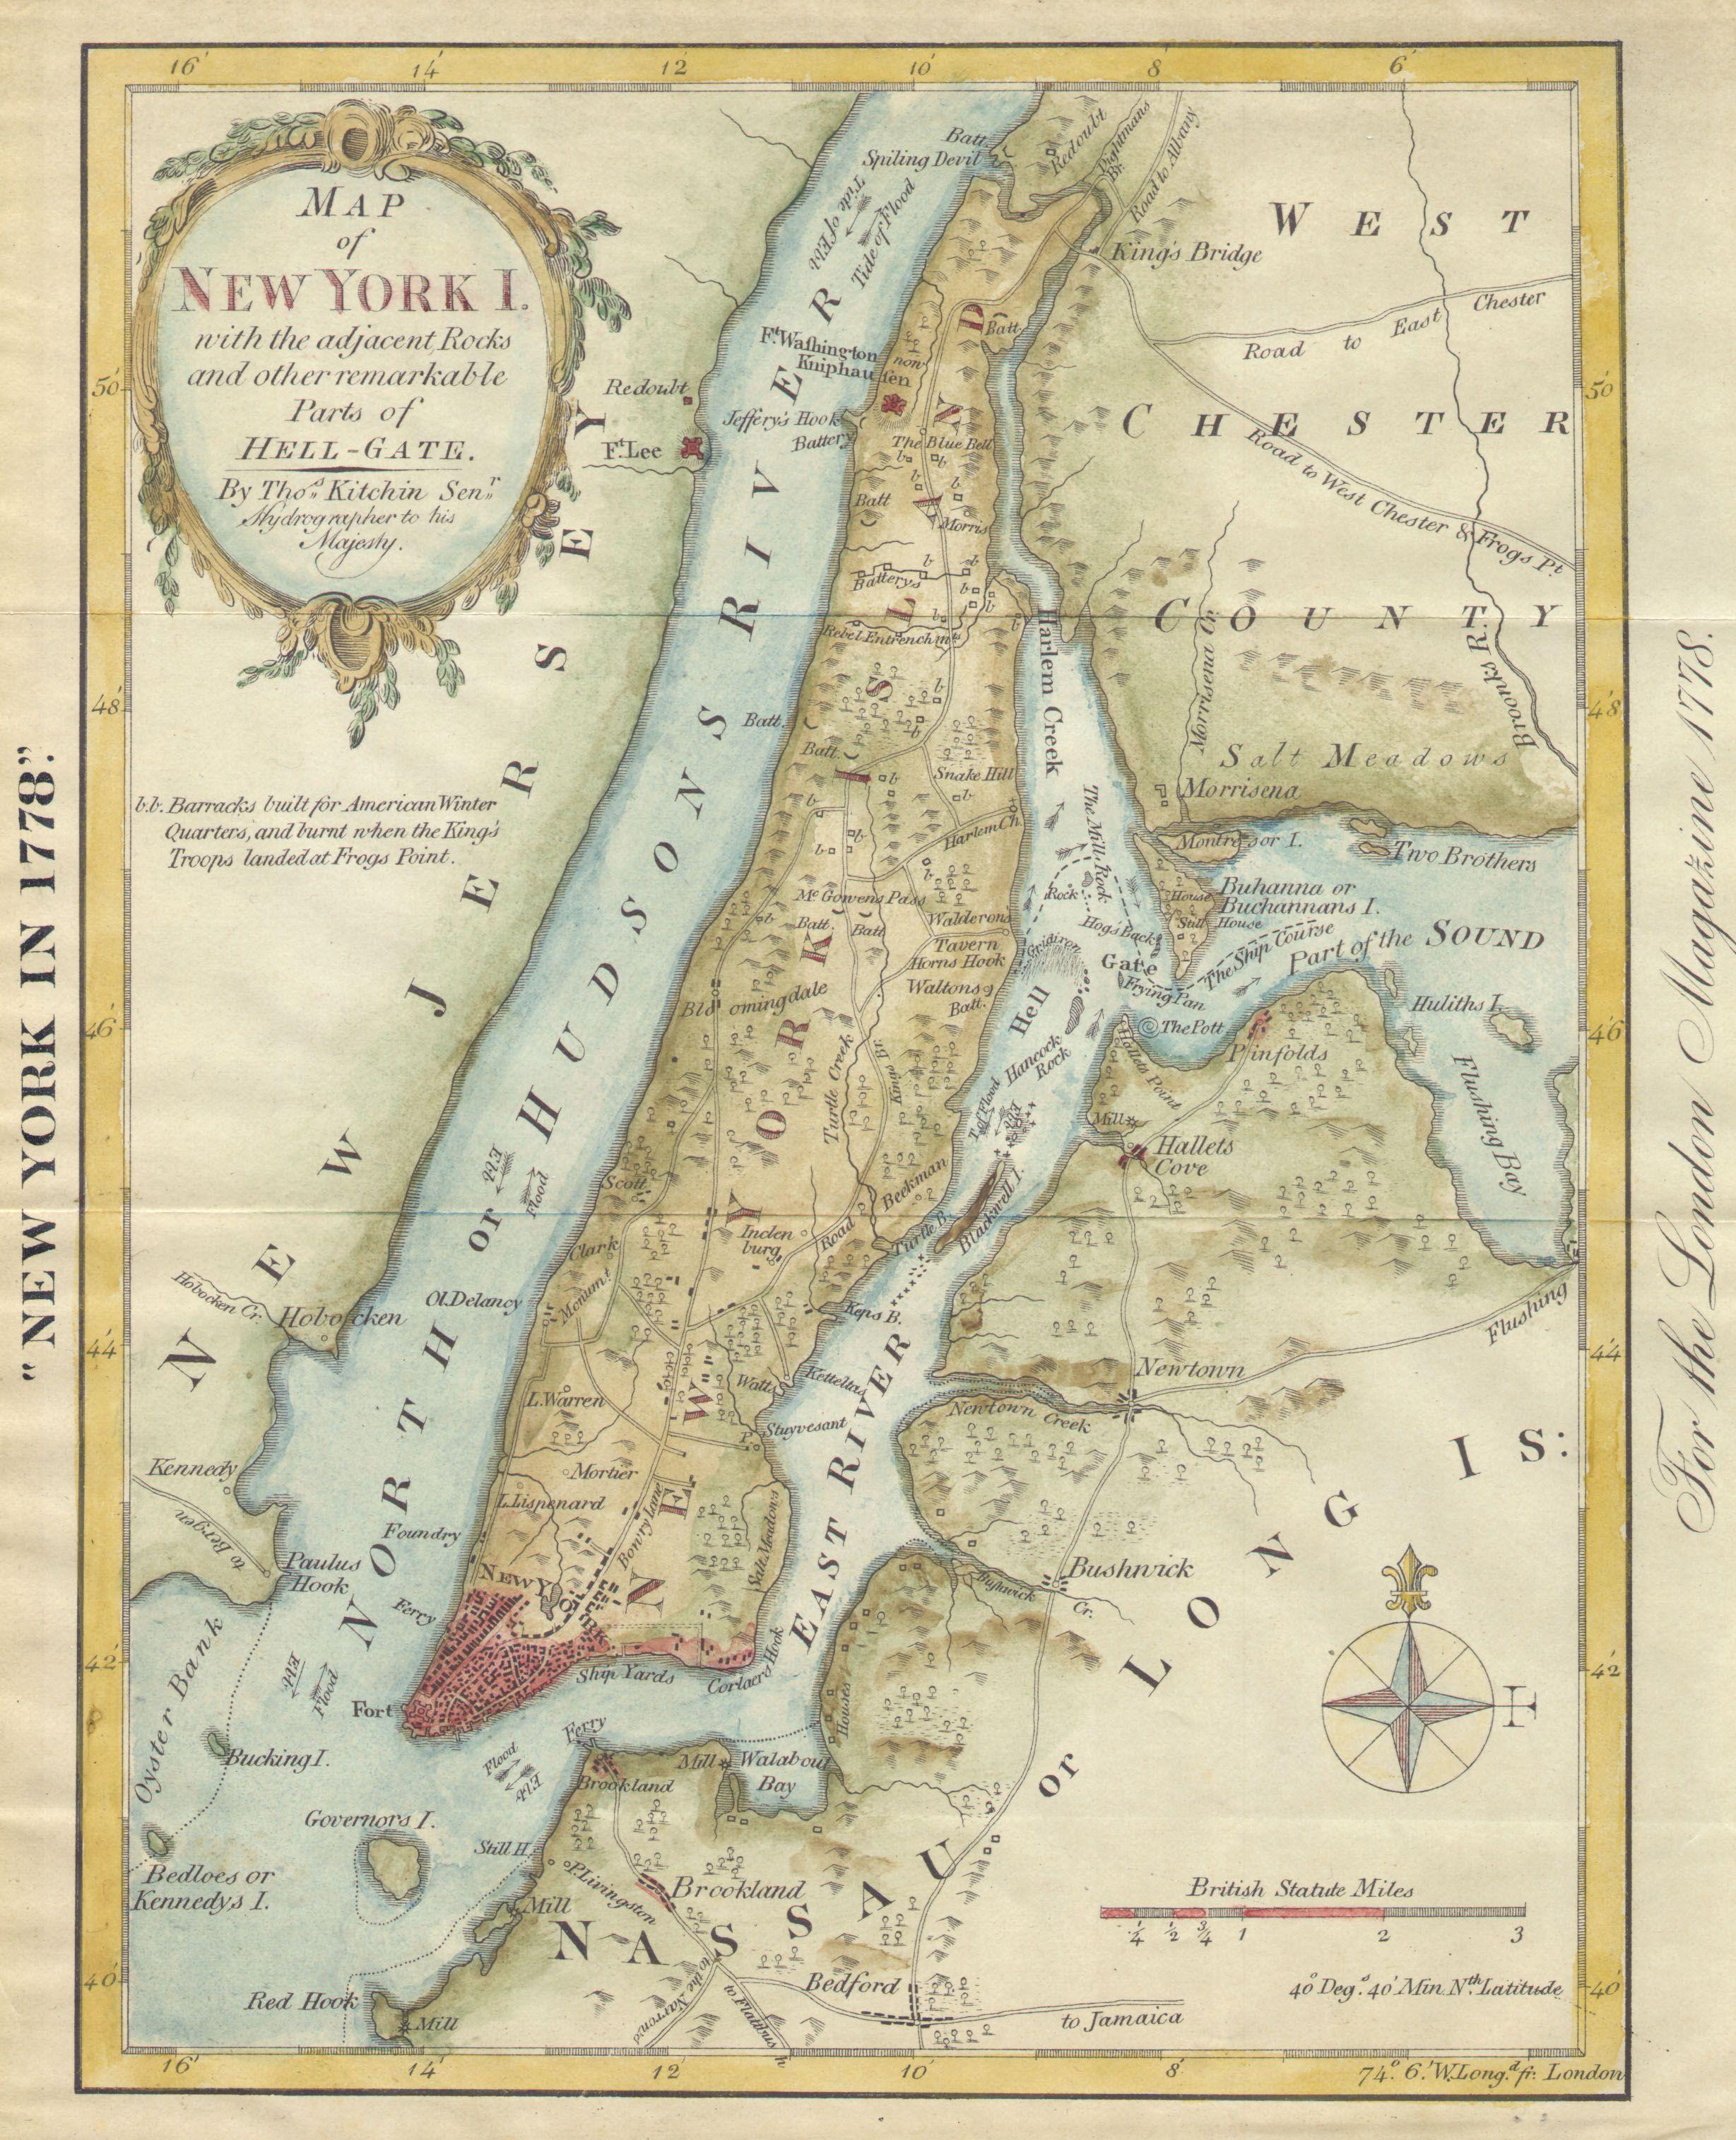 File:1869 Kitchen   Shannon Map of New York City   Geographicus